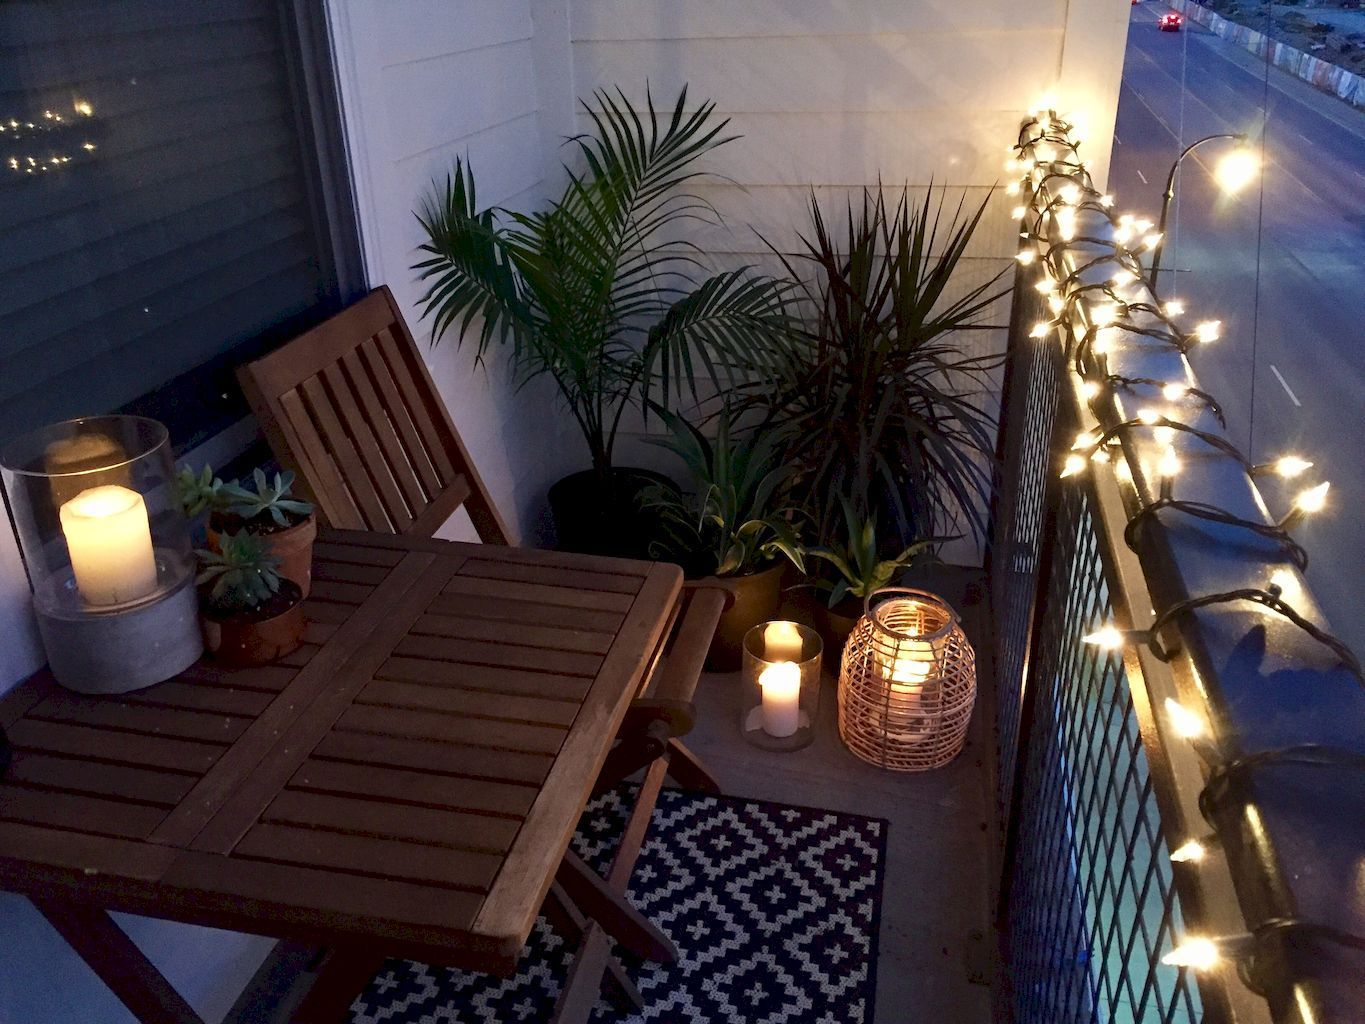 Beautiful and cozy apartment balcony decor ideas 77 for Small balcony ideas on a budget